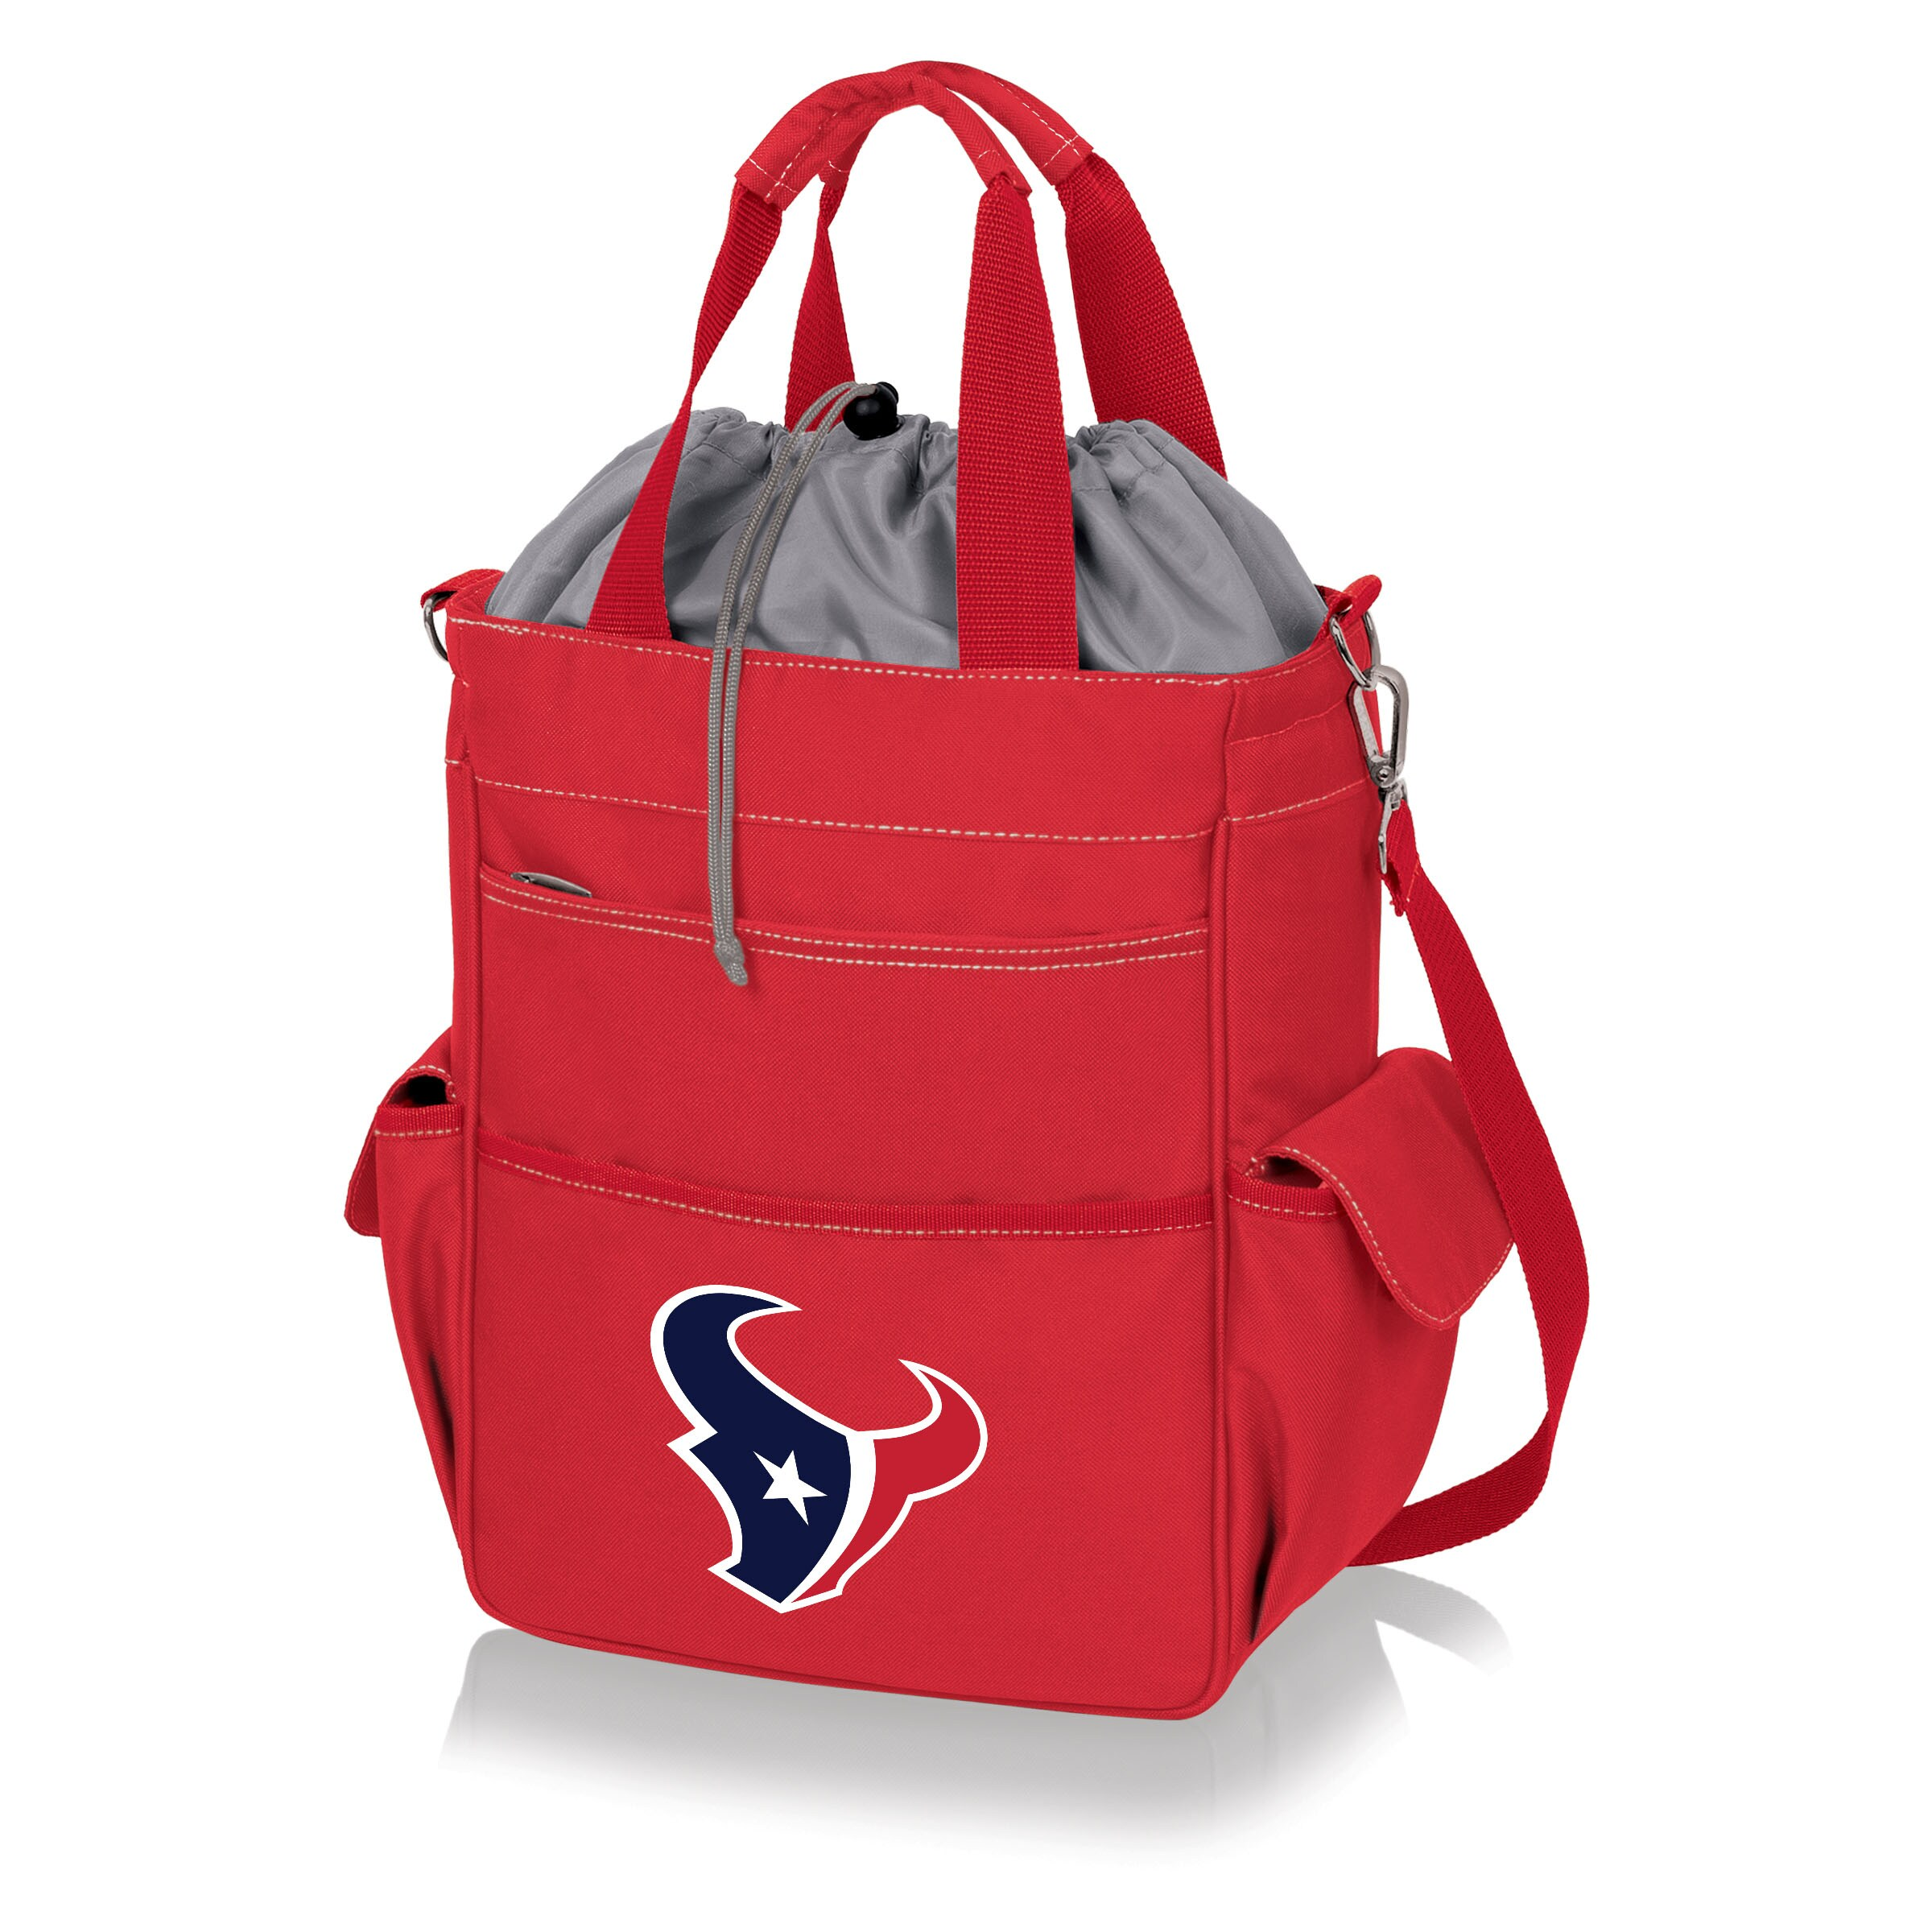 Houston Texans Activo Cooler Tote - Red